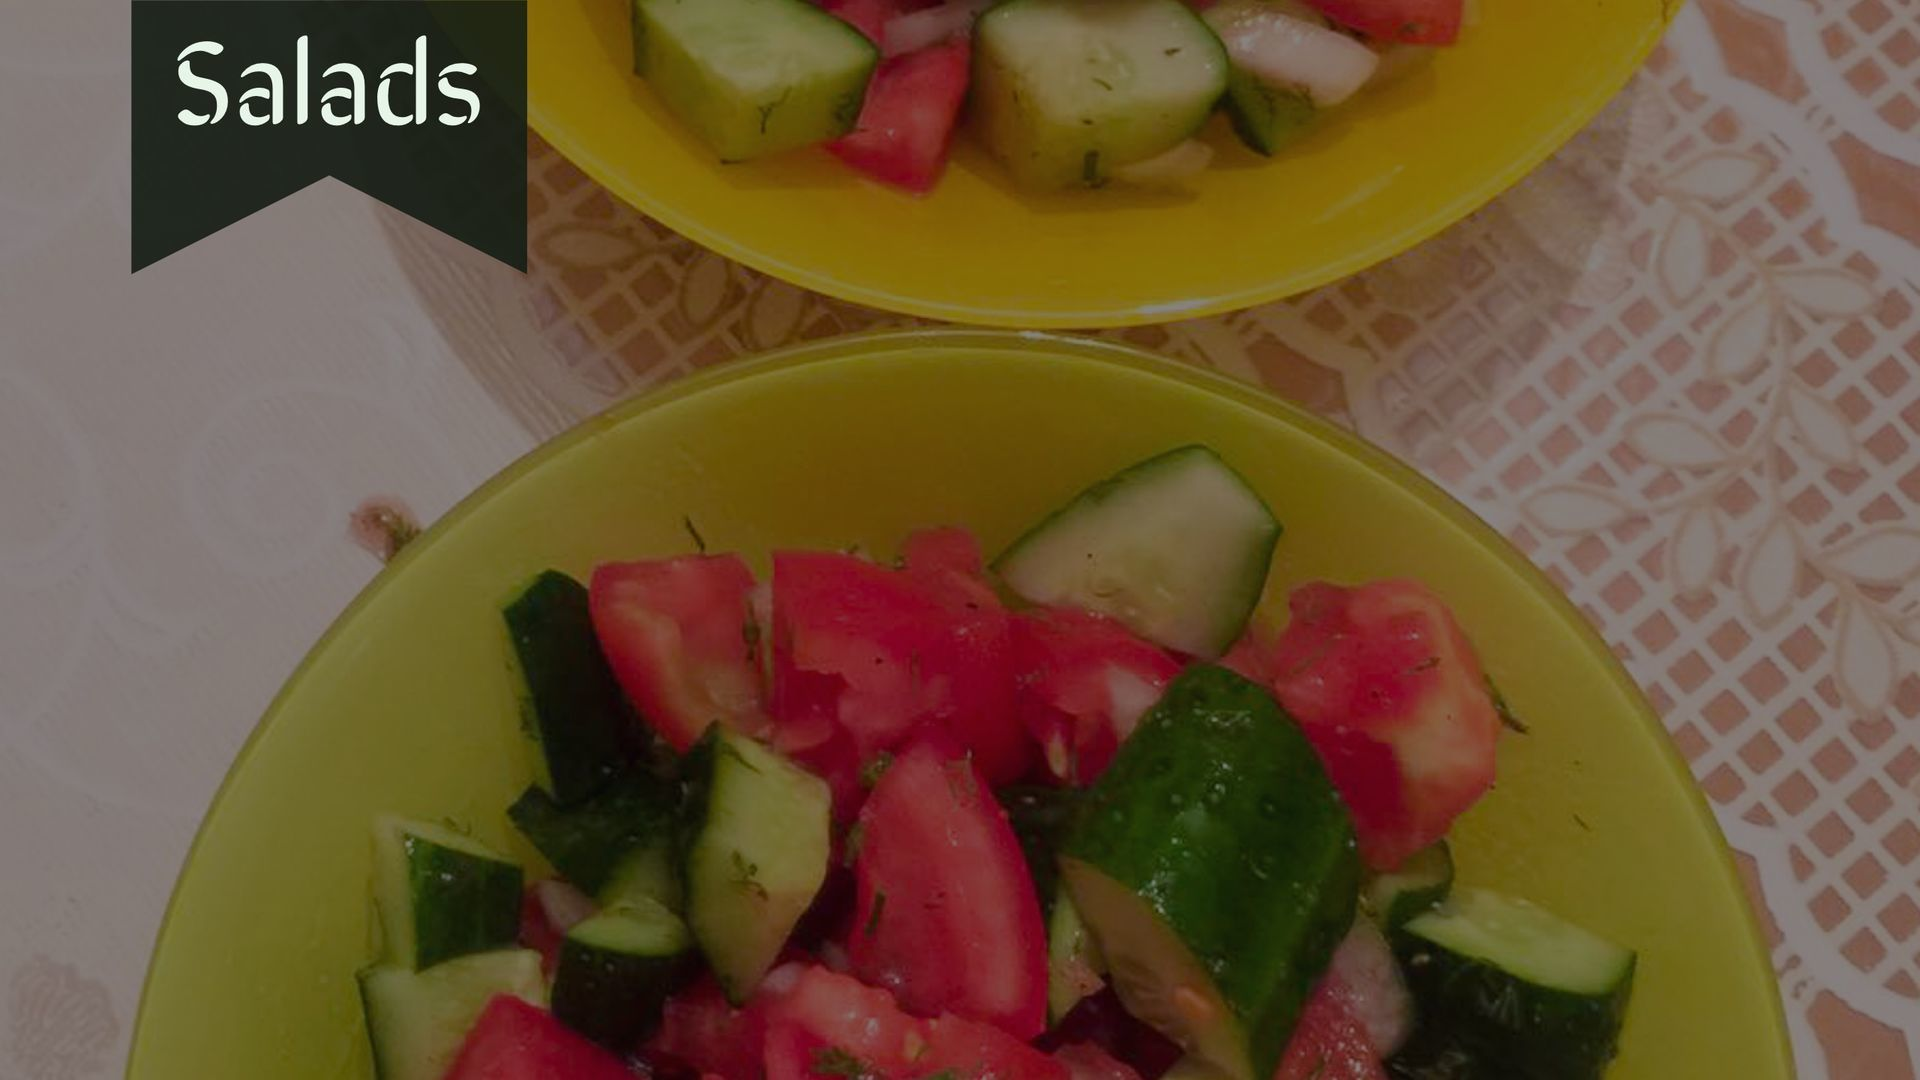 Fresh Salads in Central Asia, cucumber and tomato salad